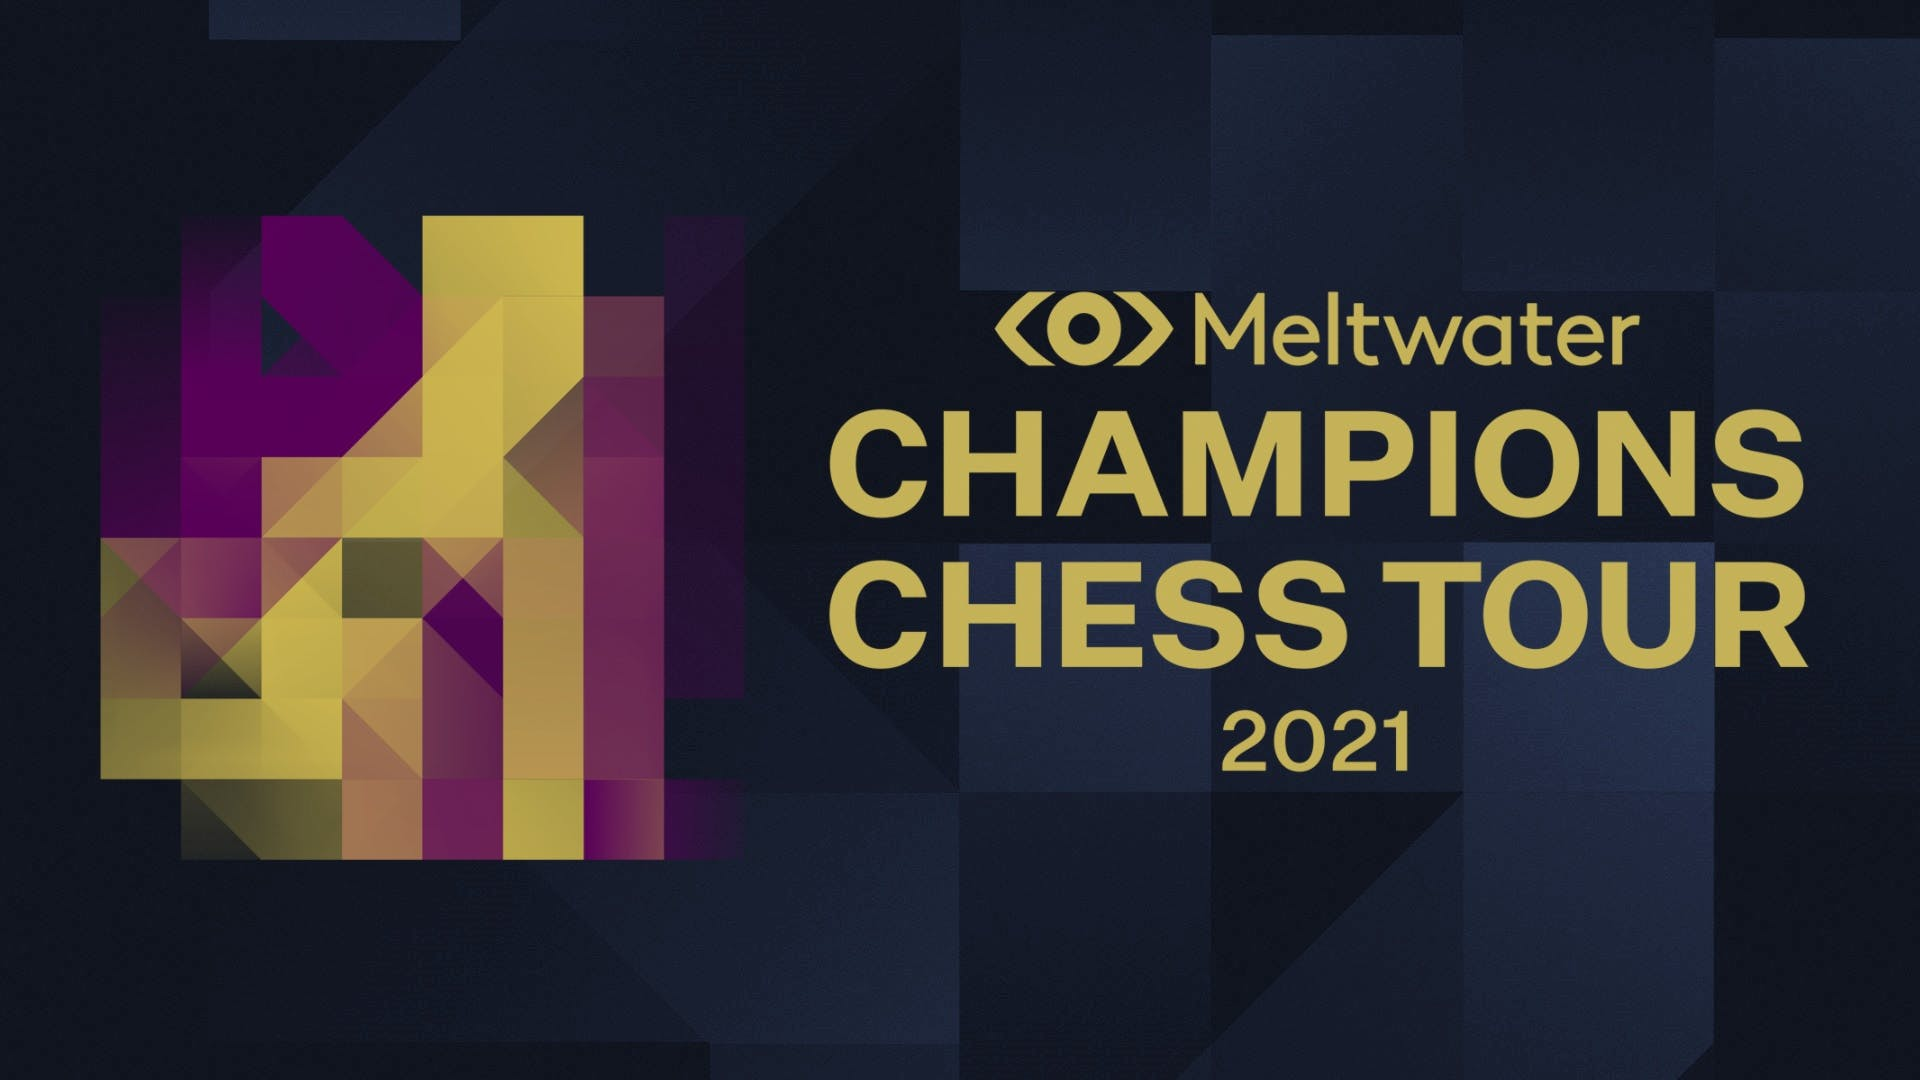 Meltwater Chess Champions Tour 2021 Banner